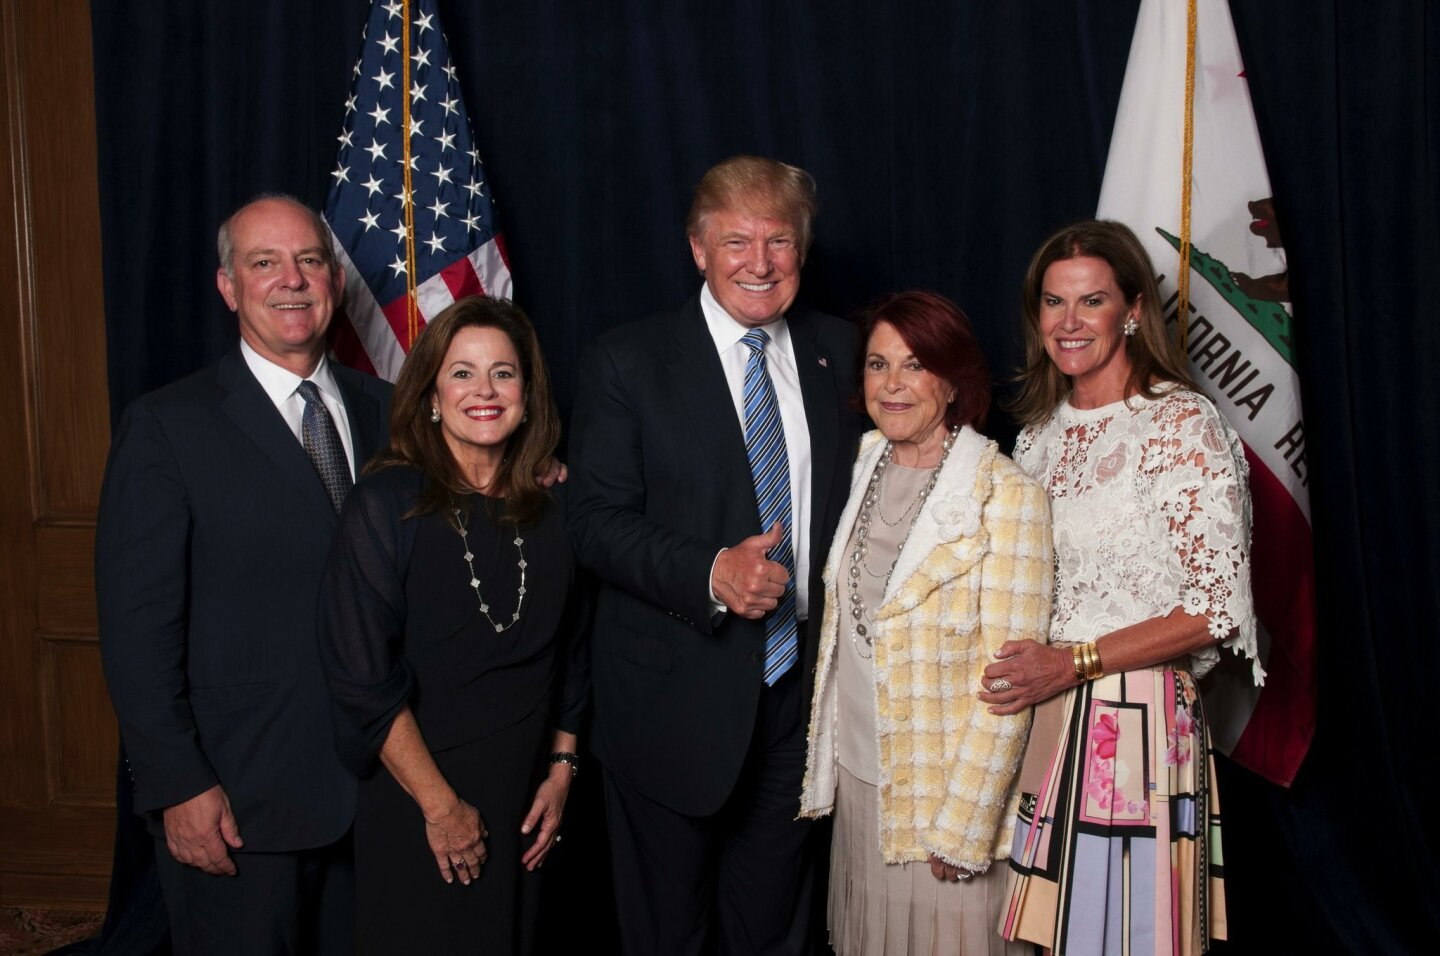 Peter and Denise Merlone, Donald Trump, Jenny Craig, Michelle Weinger